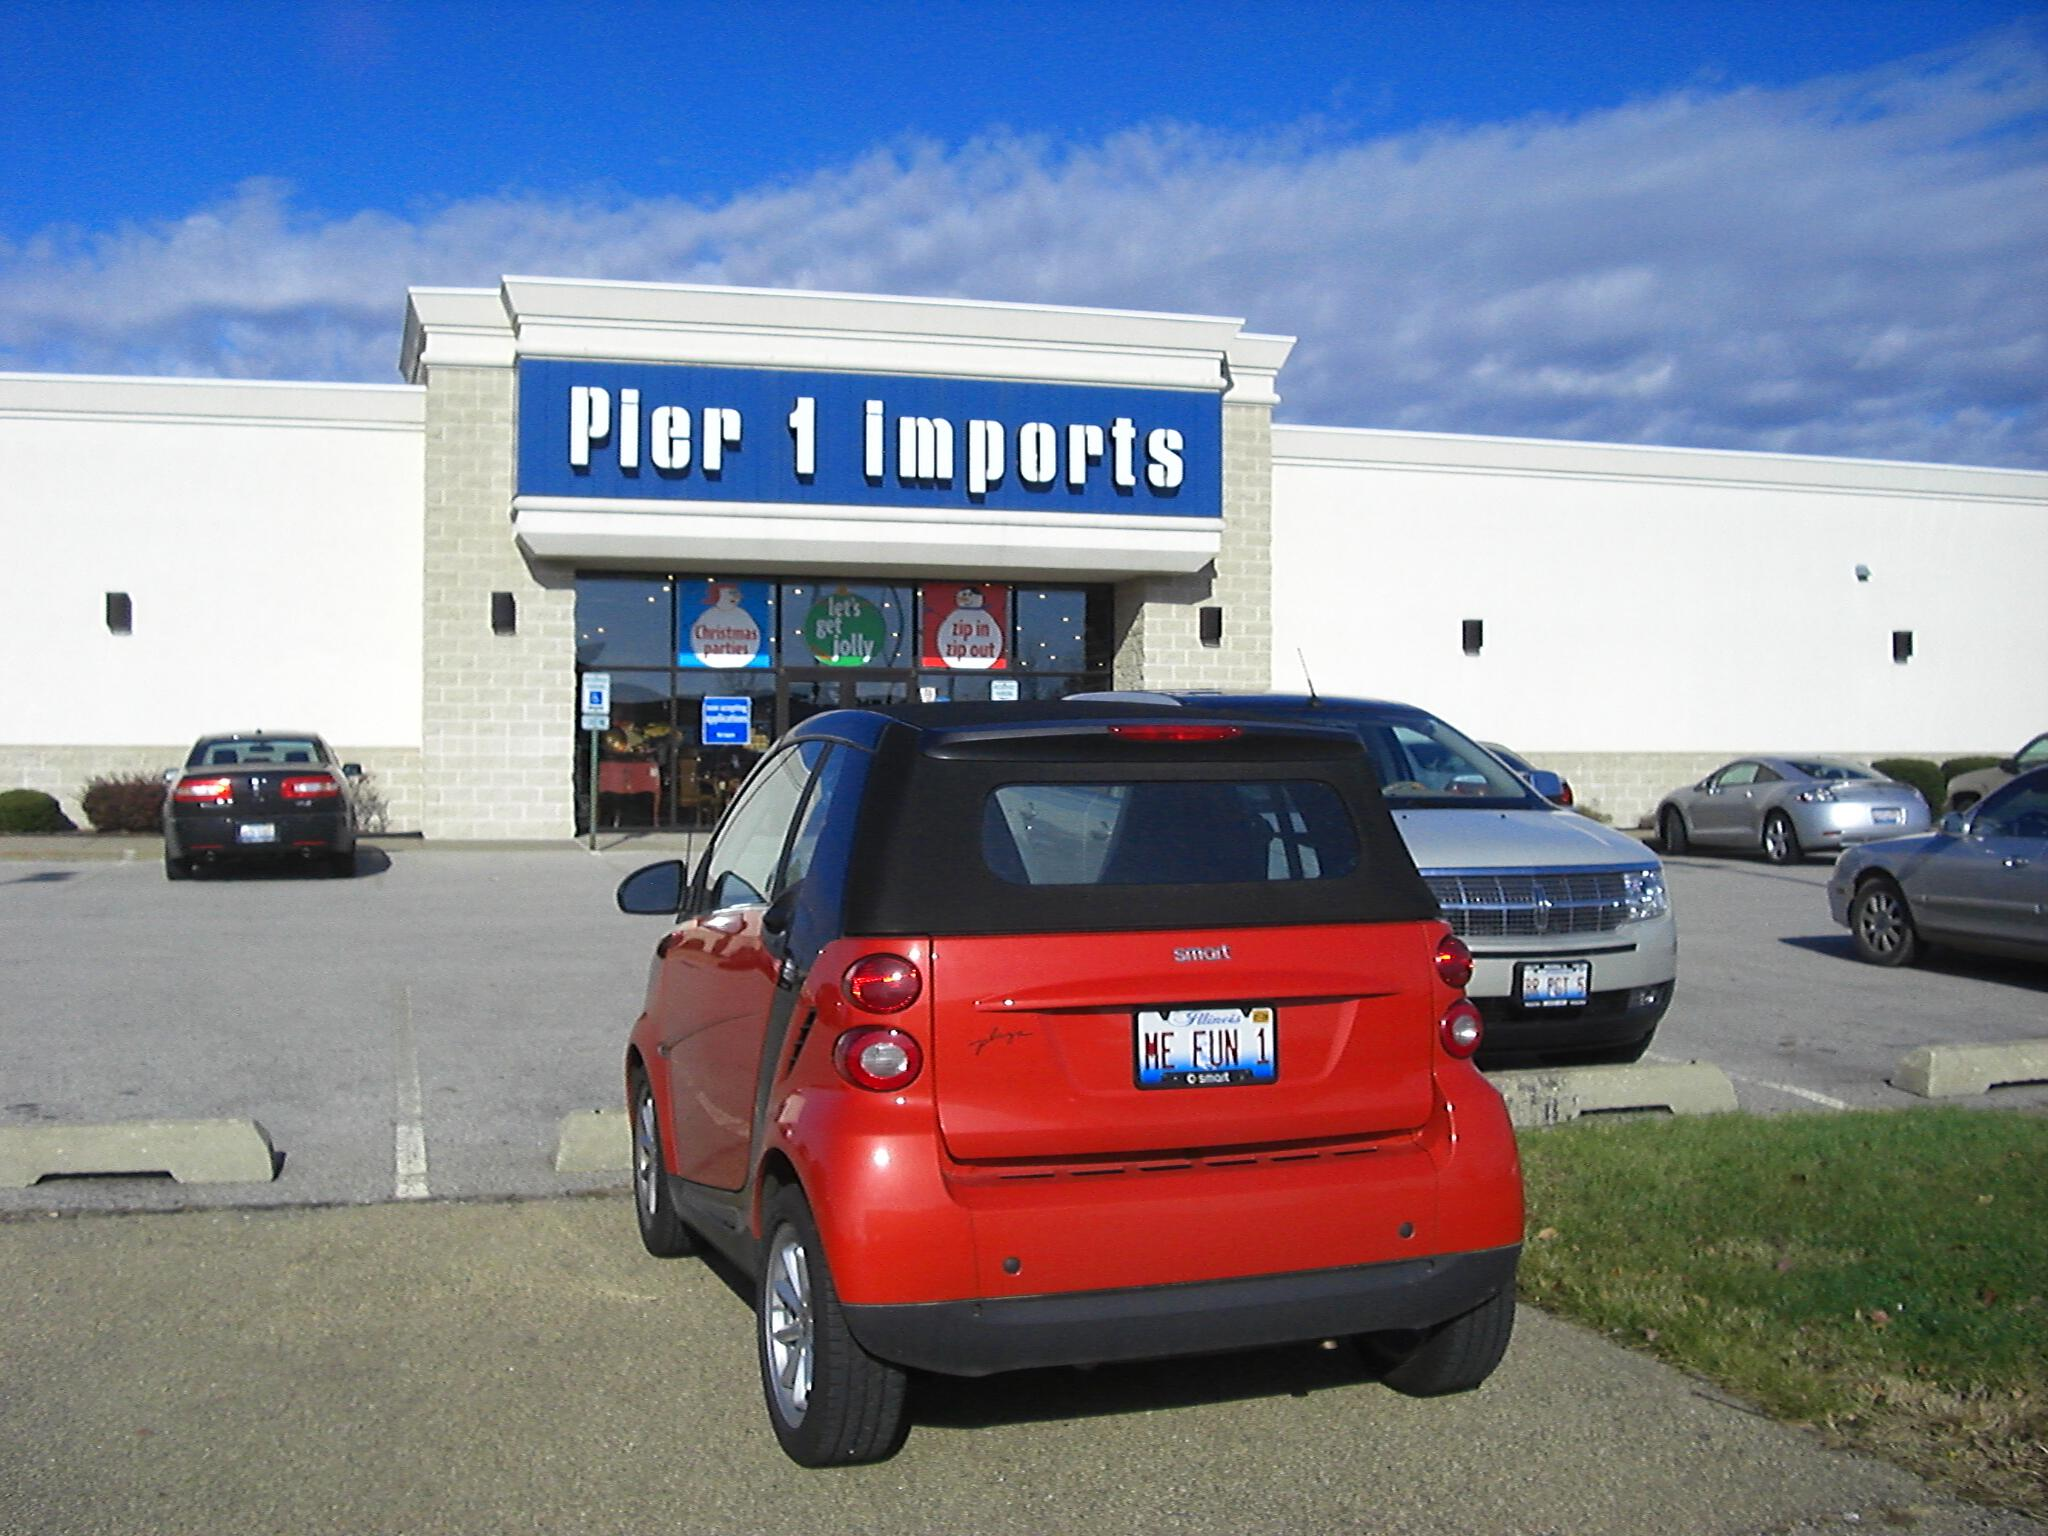 Smart car Pier 1 Imports Peoria Illinois